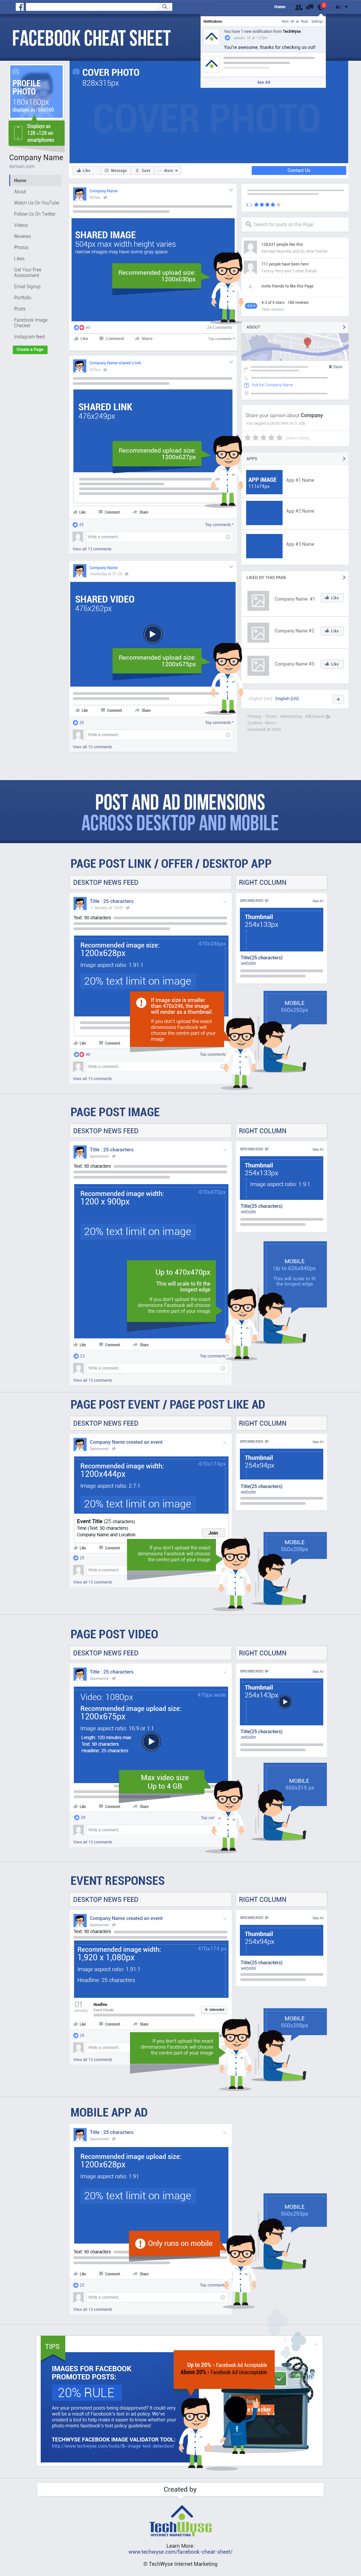 Facebook Image Size Cheat Sheet [Infographic] | Social Media Today